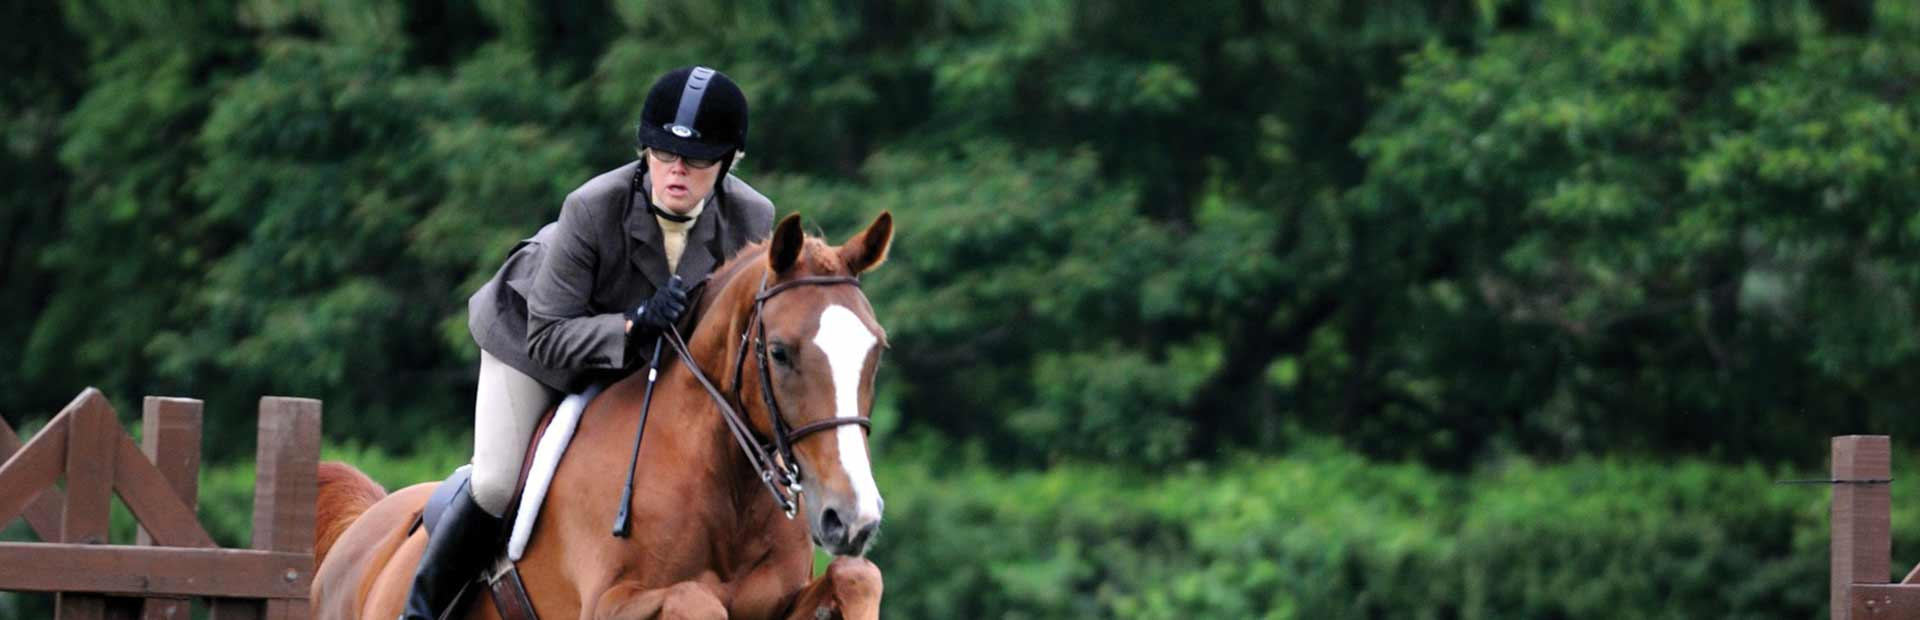 Windermere Equestrian Center Lessons Boarding Shows And Care - 12 equestrian places in the us